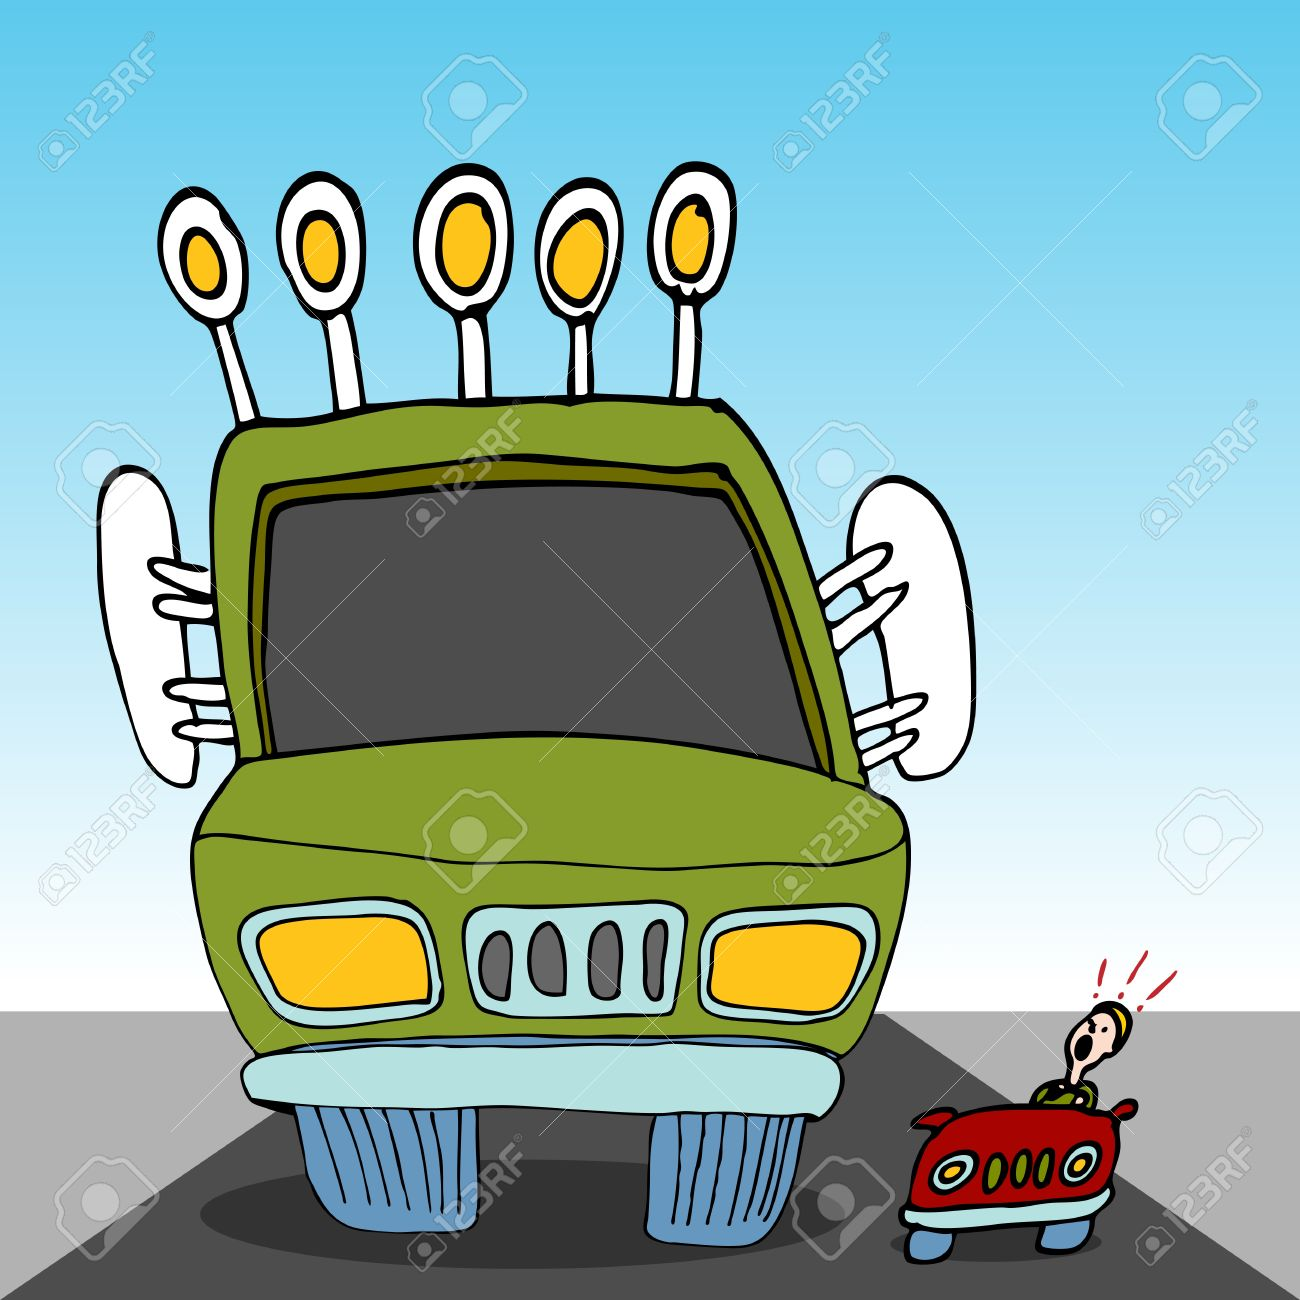 Monster driving car of car clipart clip art royalty free An Image Of A Monster Sized Truck Driving Next To A Tiny Car ... clip art royalty free